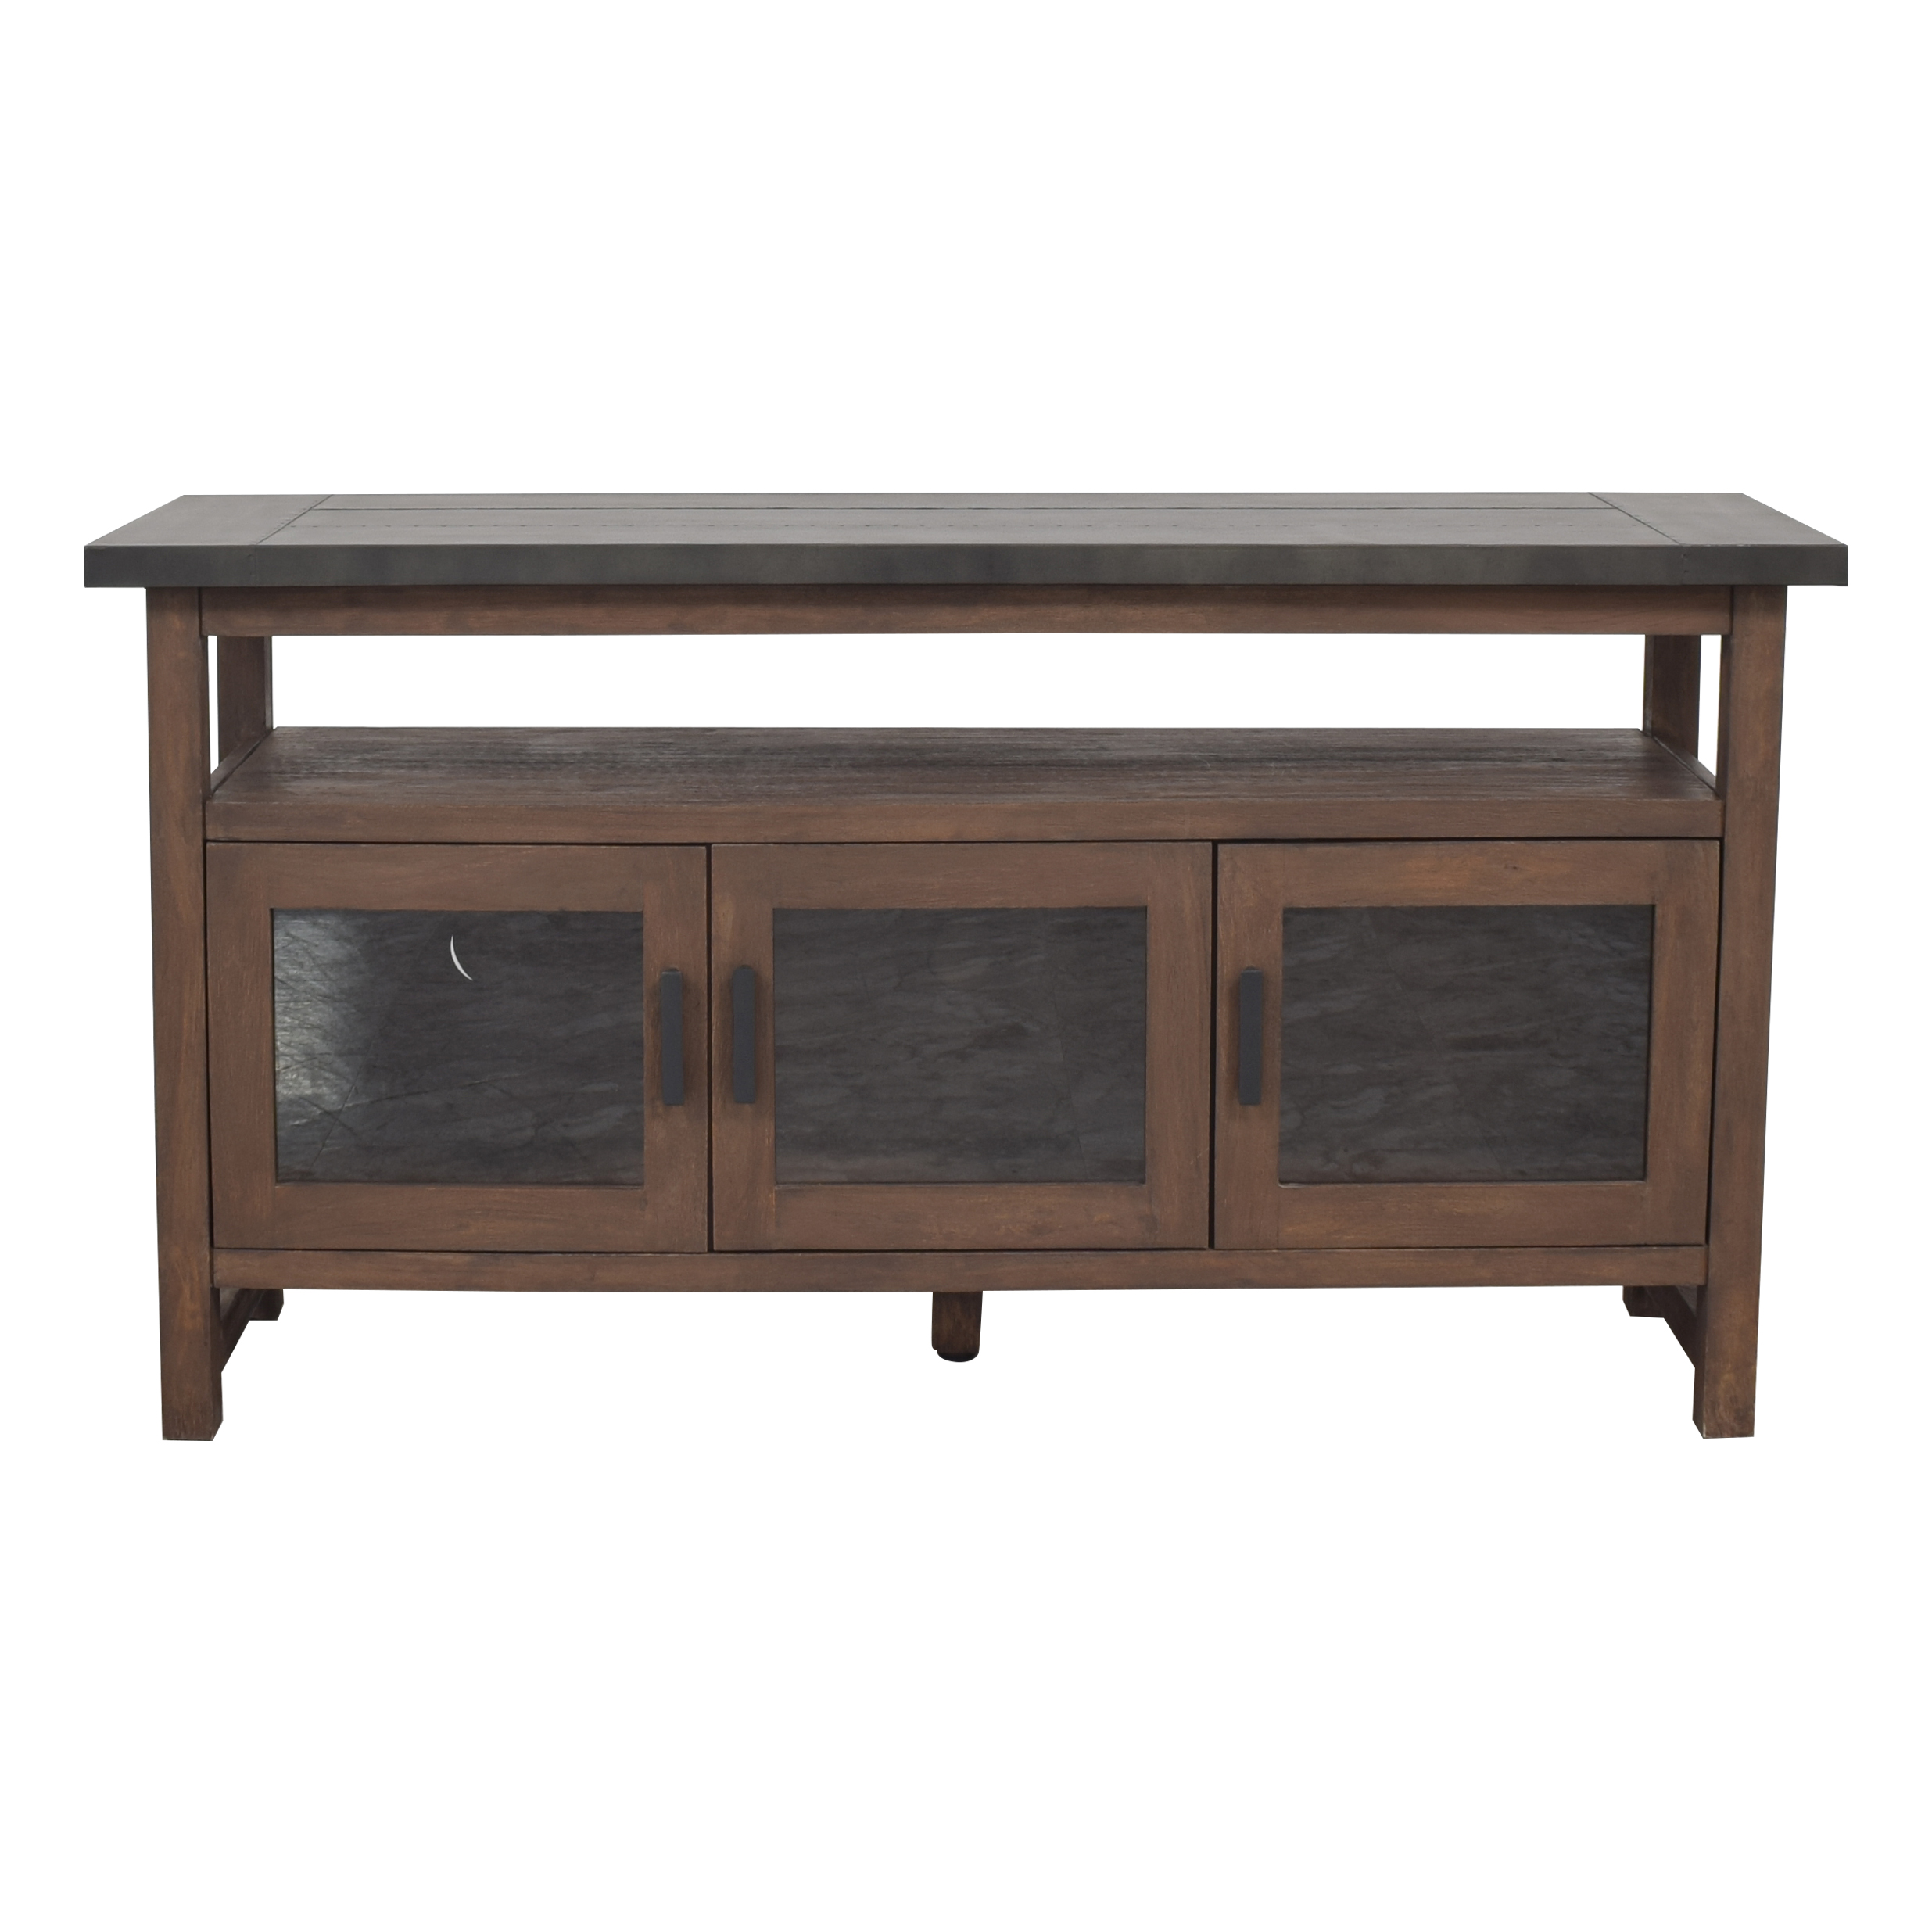 Crate & Barrel Crate & Barrel Galvin Sideboard used